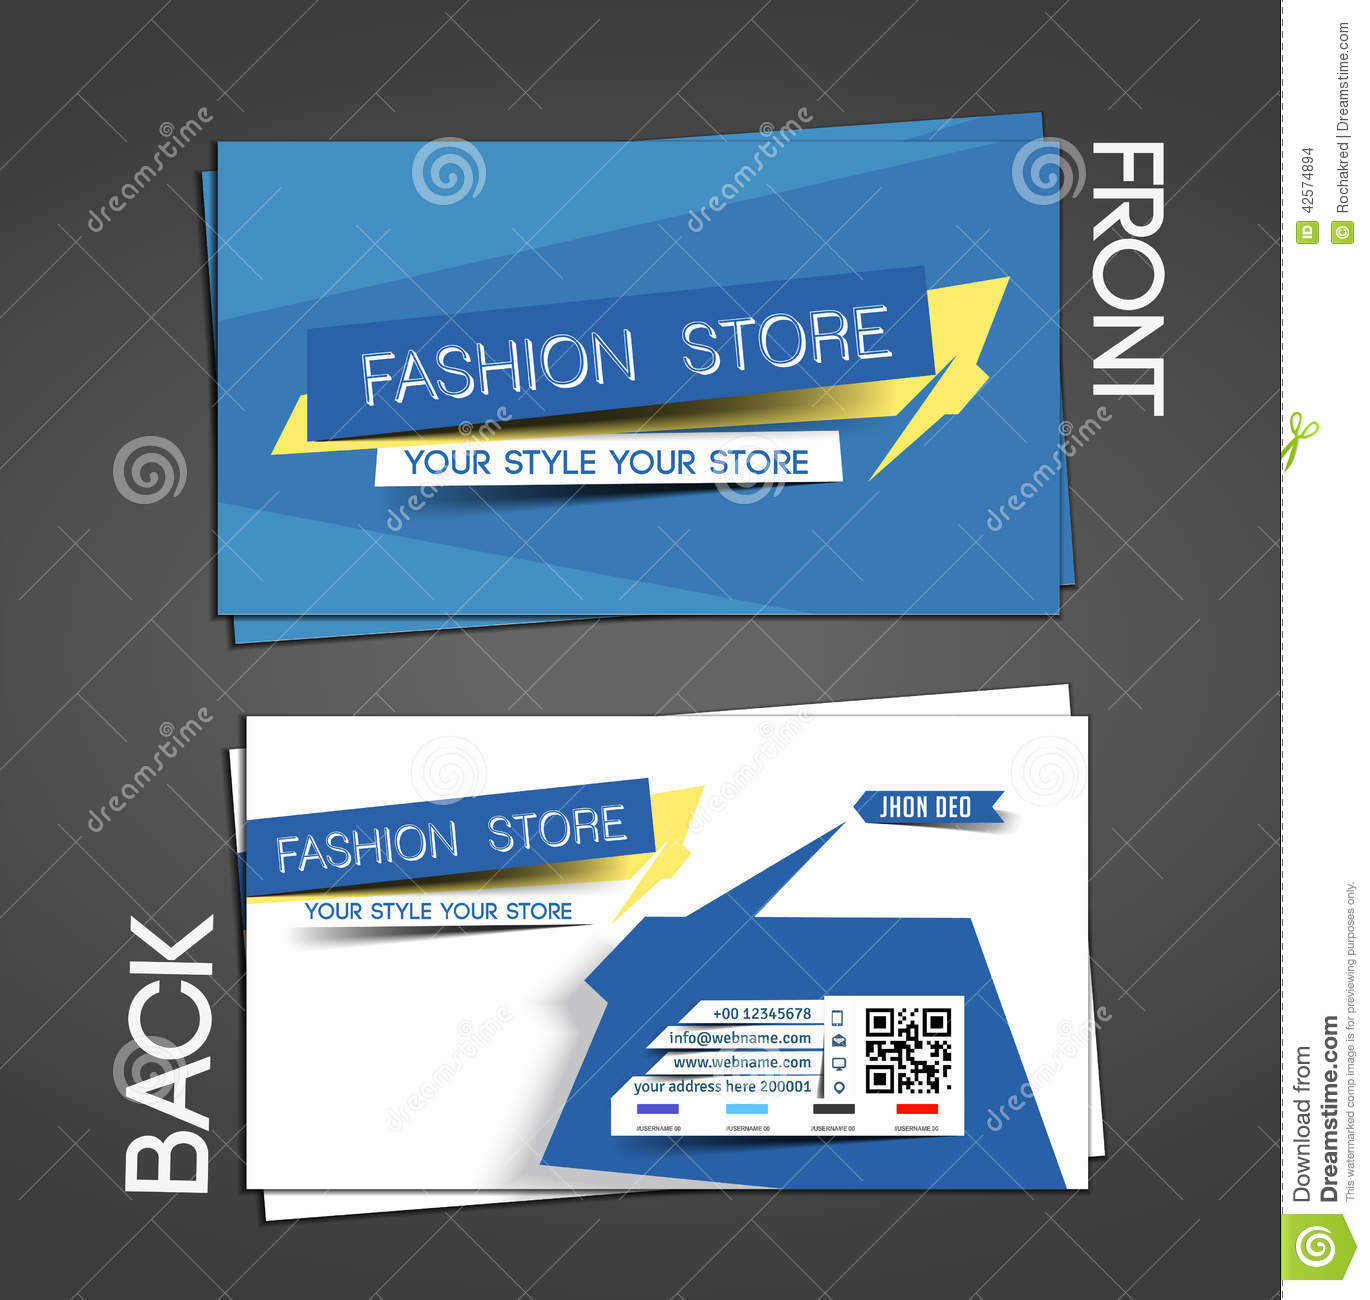 Fashion Store Business Card Stock Vector - Illustration of ...